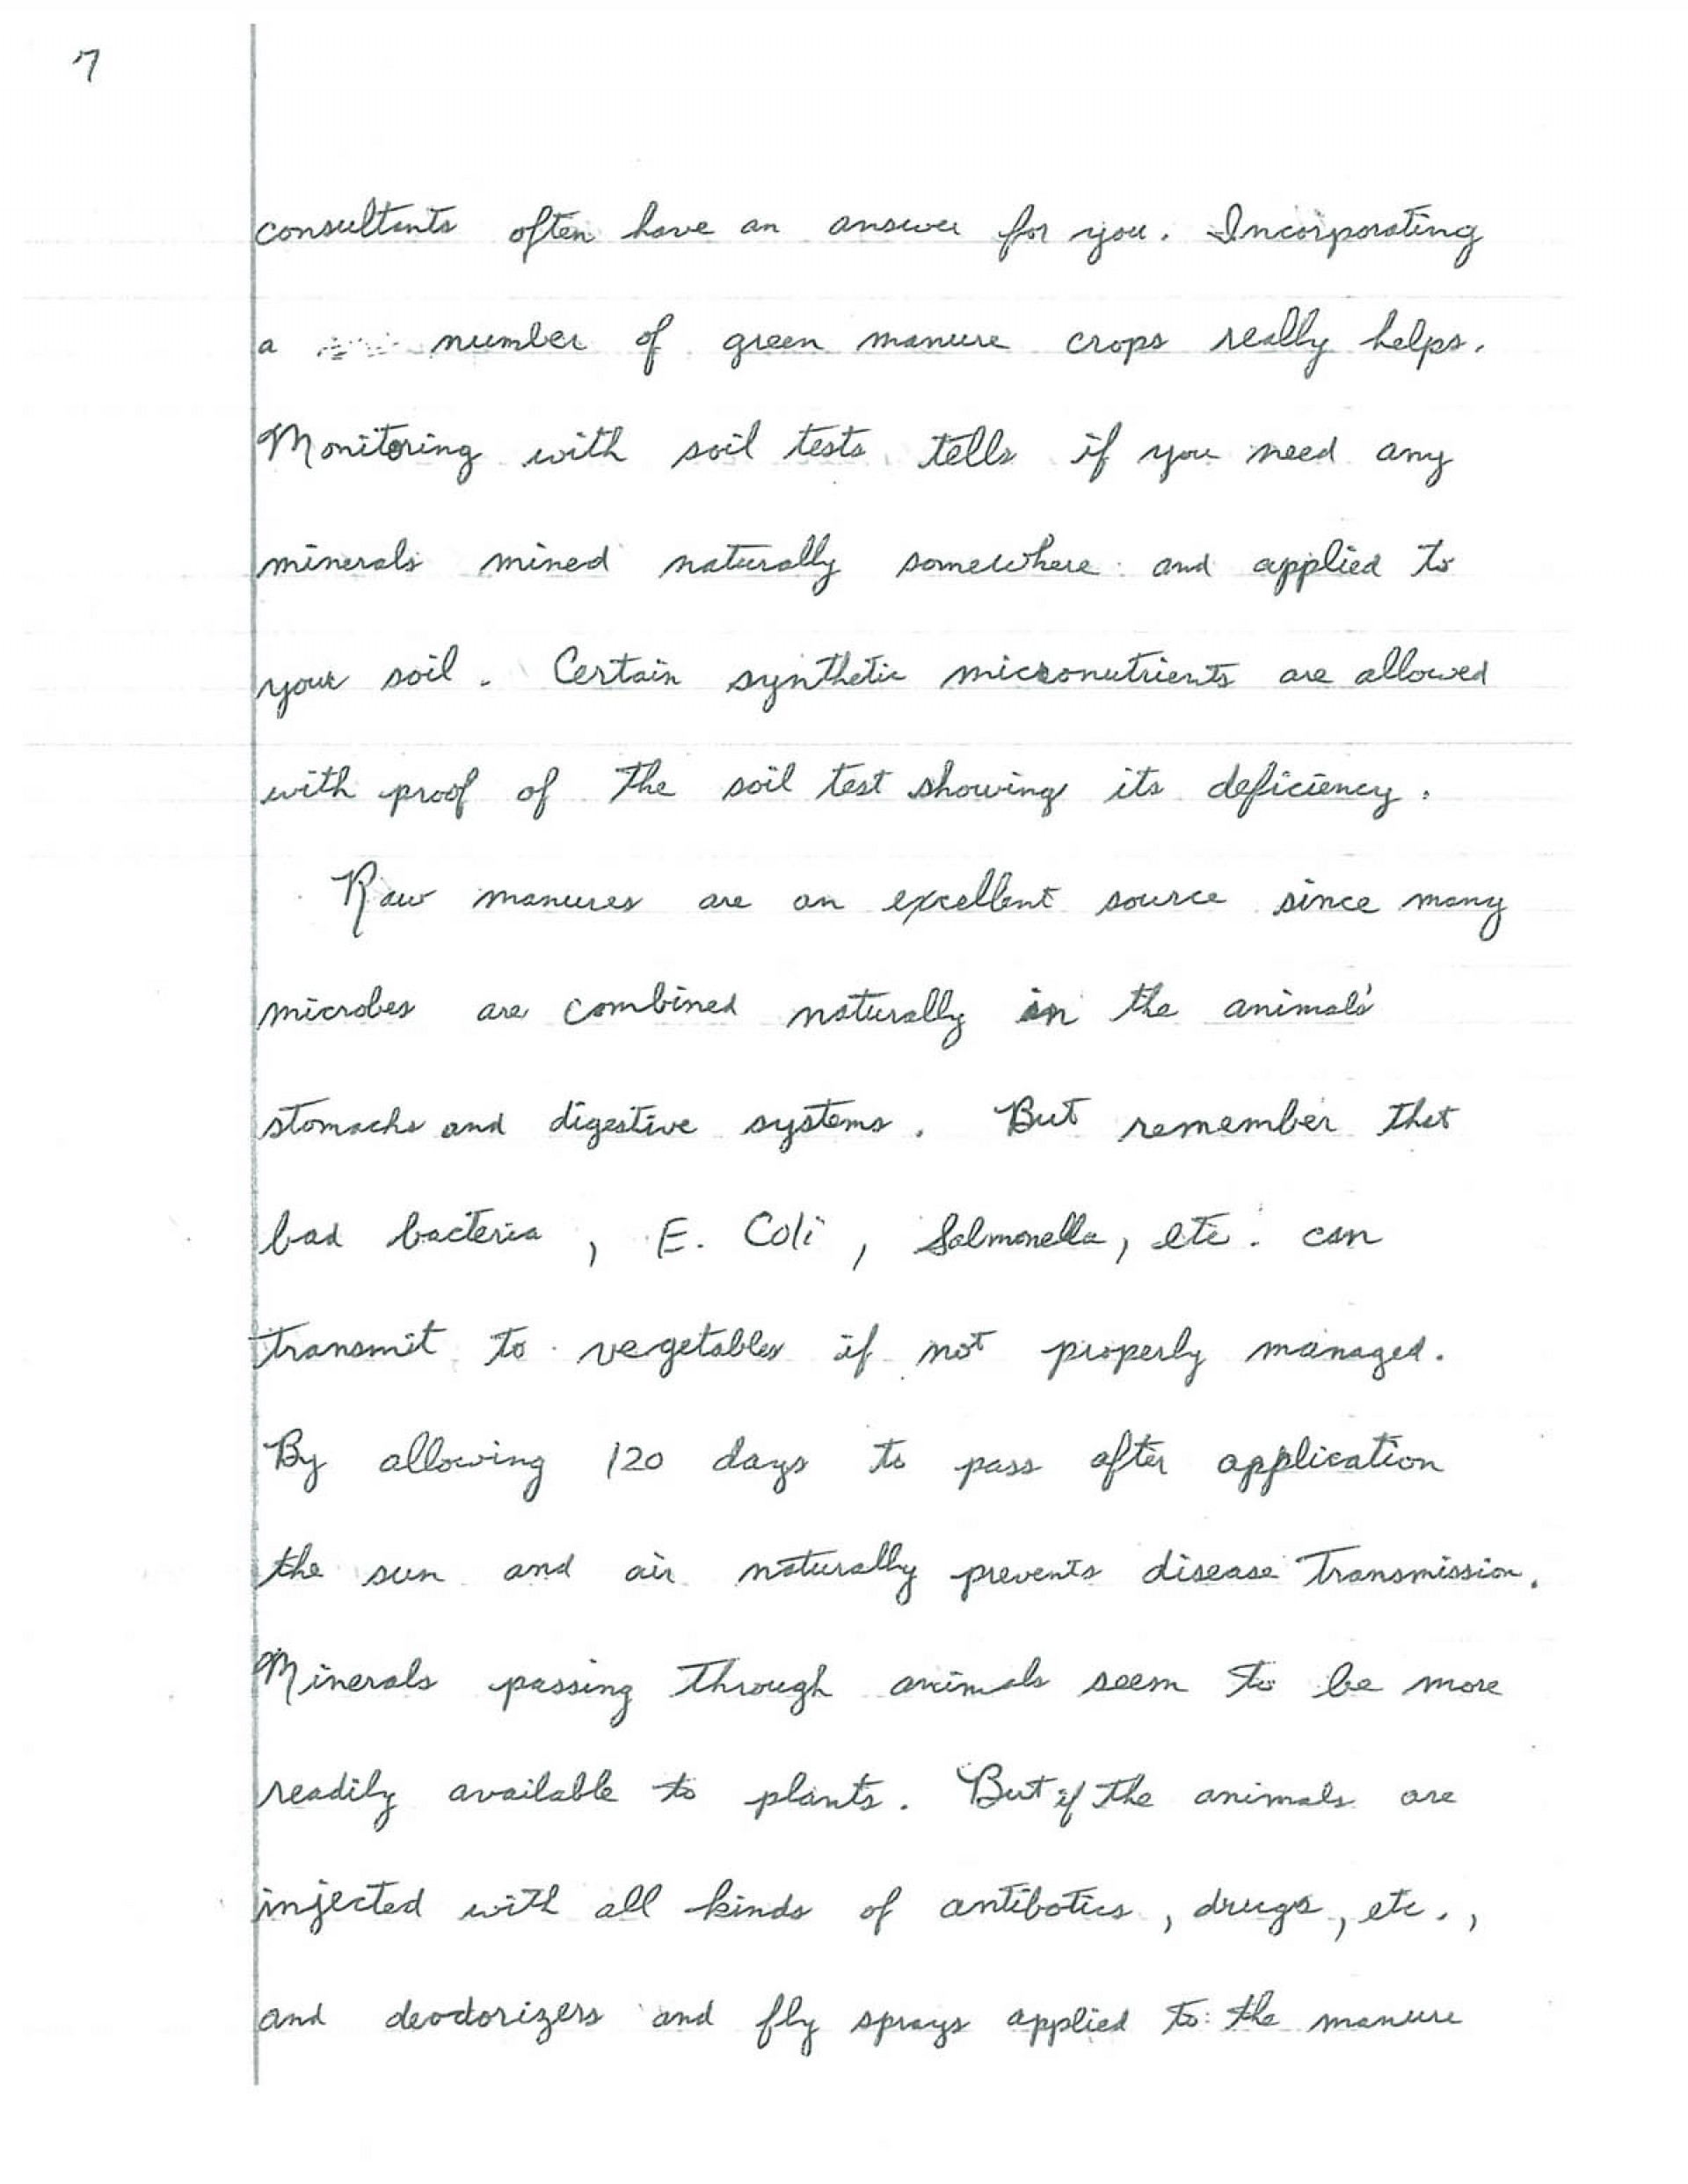 013 Essay Example Handwriting Amish Farmer Importance Good Cursive Vs Typing Analysis Recognition Sat Titles For Fearsome On Short Of In Hindi Gujarati 1920